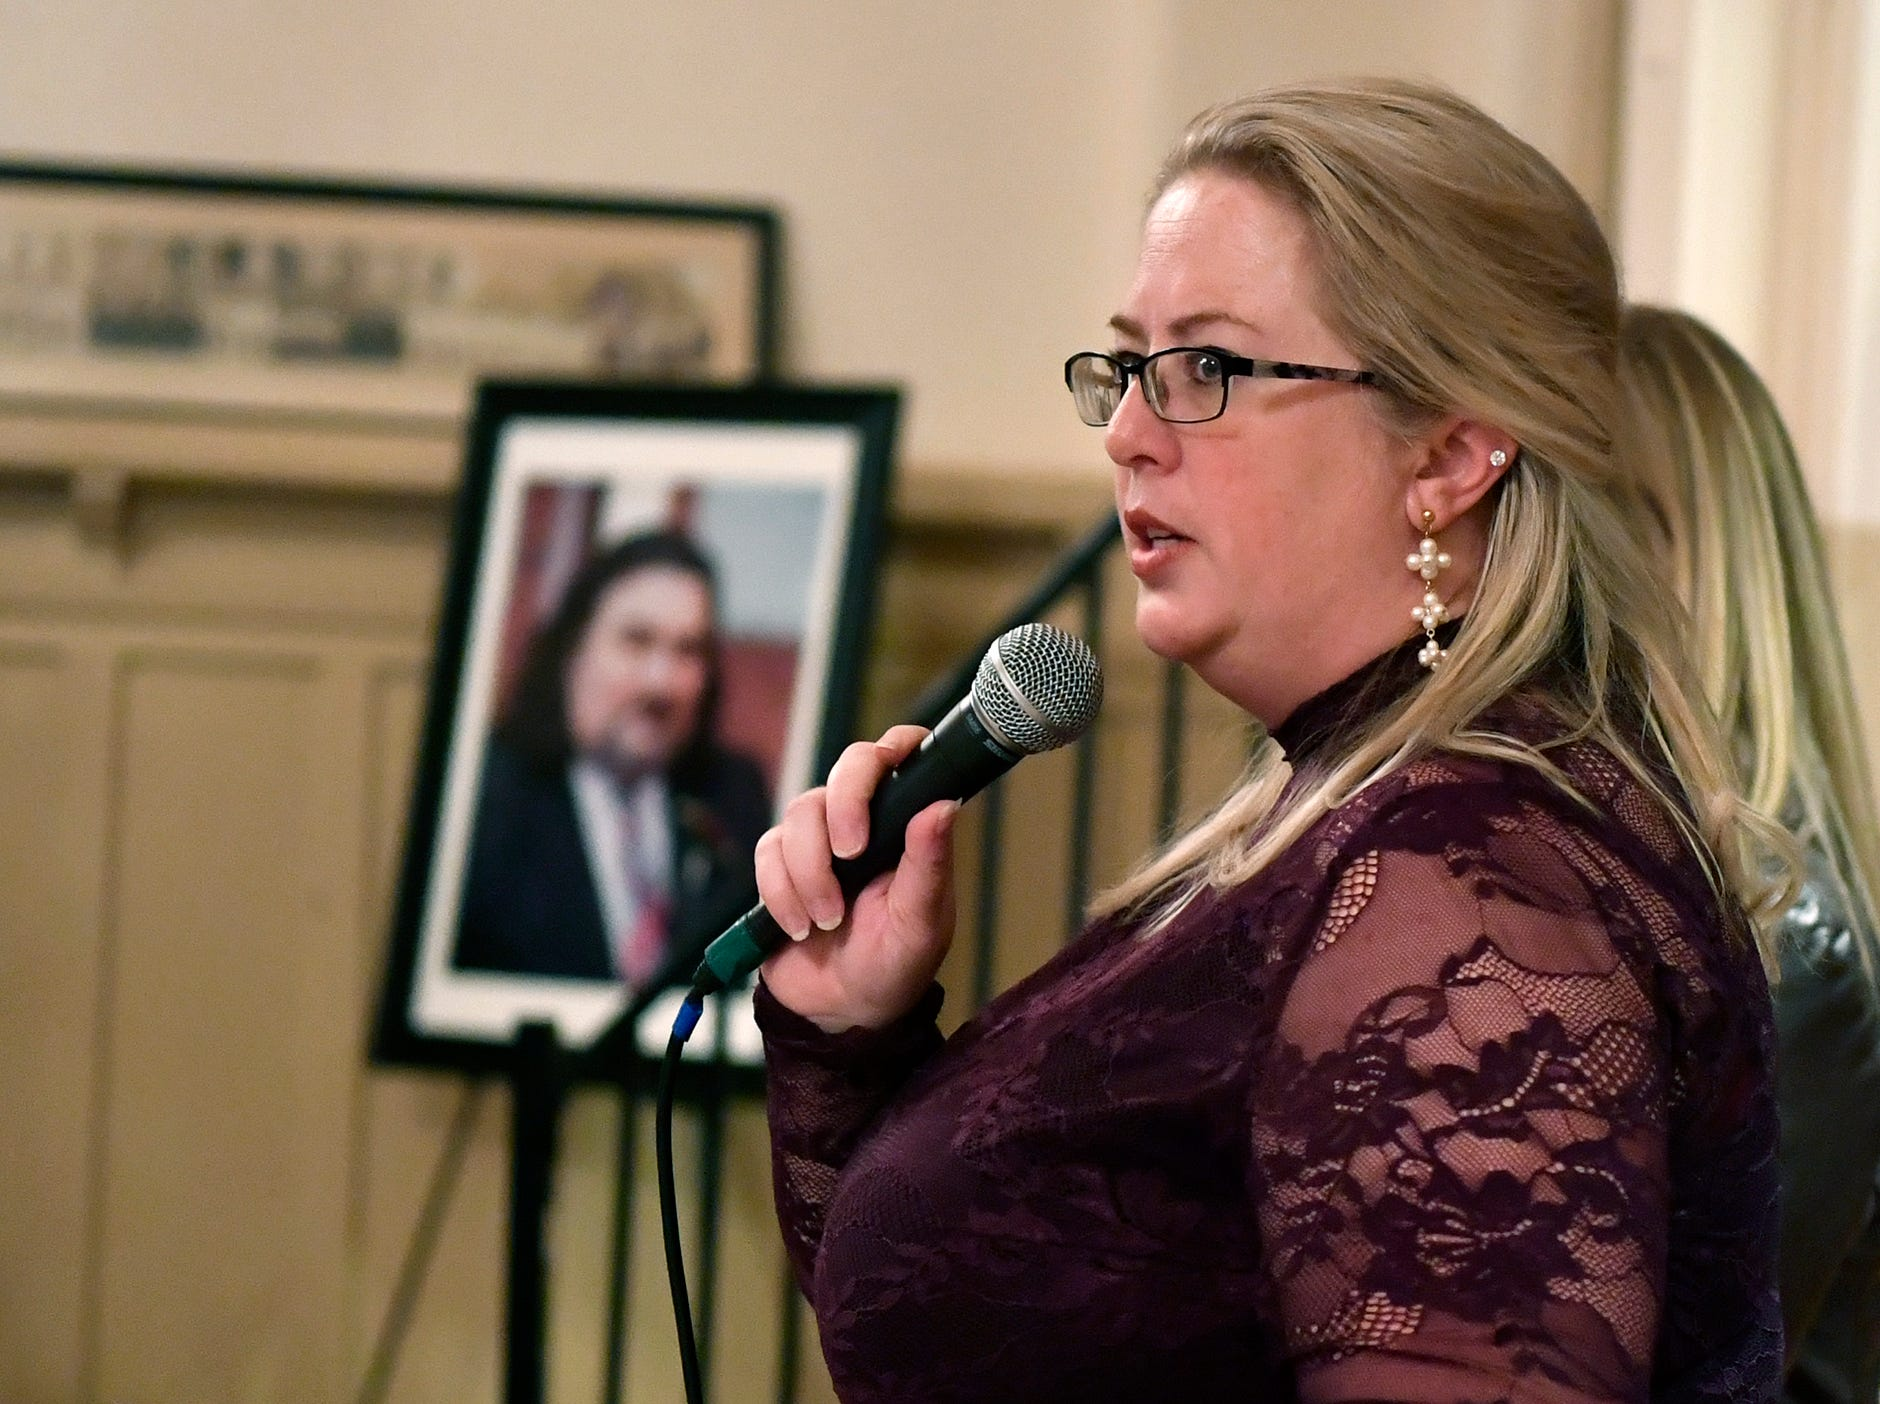 Korey Knight thanks family and friends who gather to celebrate the life of Douglas Knight, Saturday, January 11, 2019 at the Elk's Club in York.